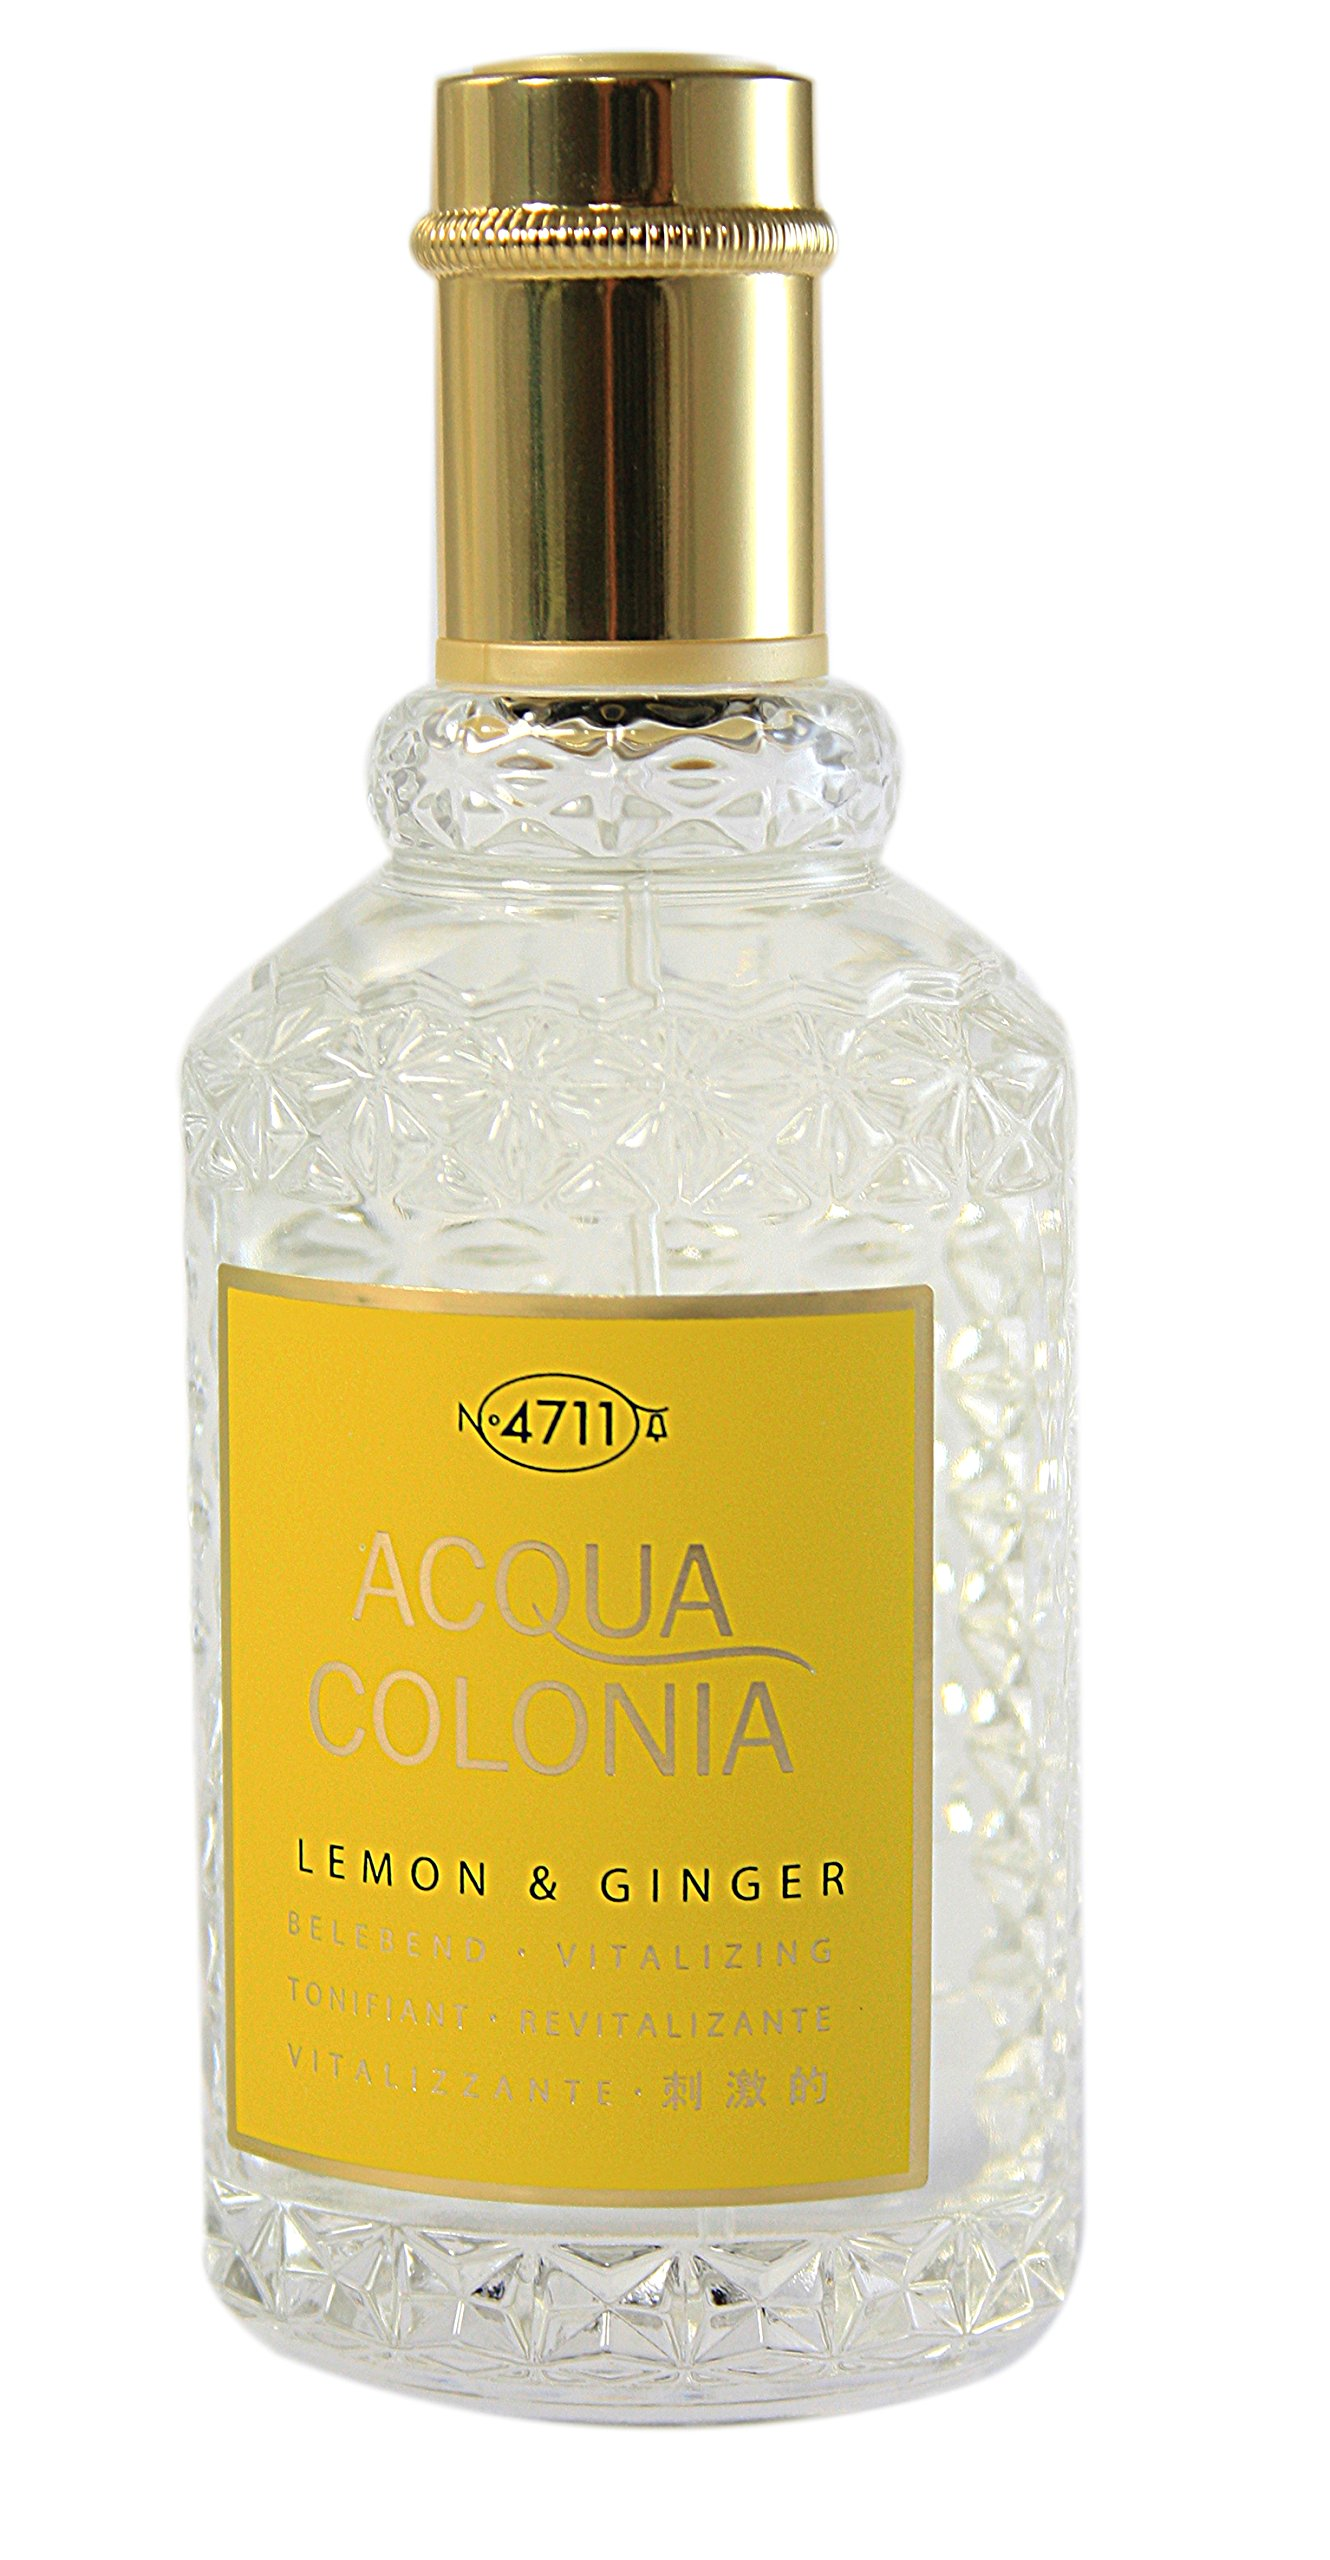 4711 Acqua Colonia Lemon and Ginger Eau de Cologne Spray, 5.7 Ounce